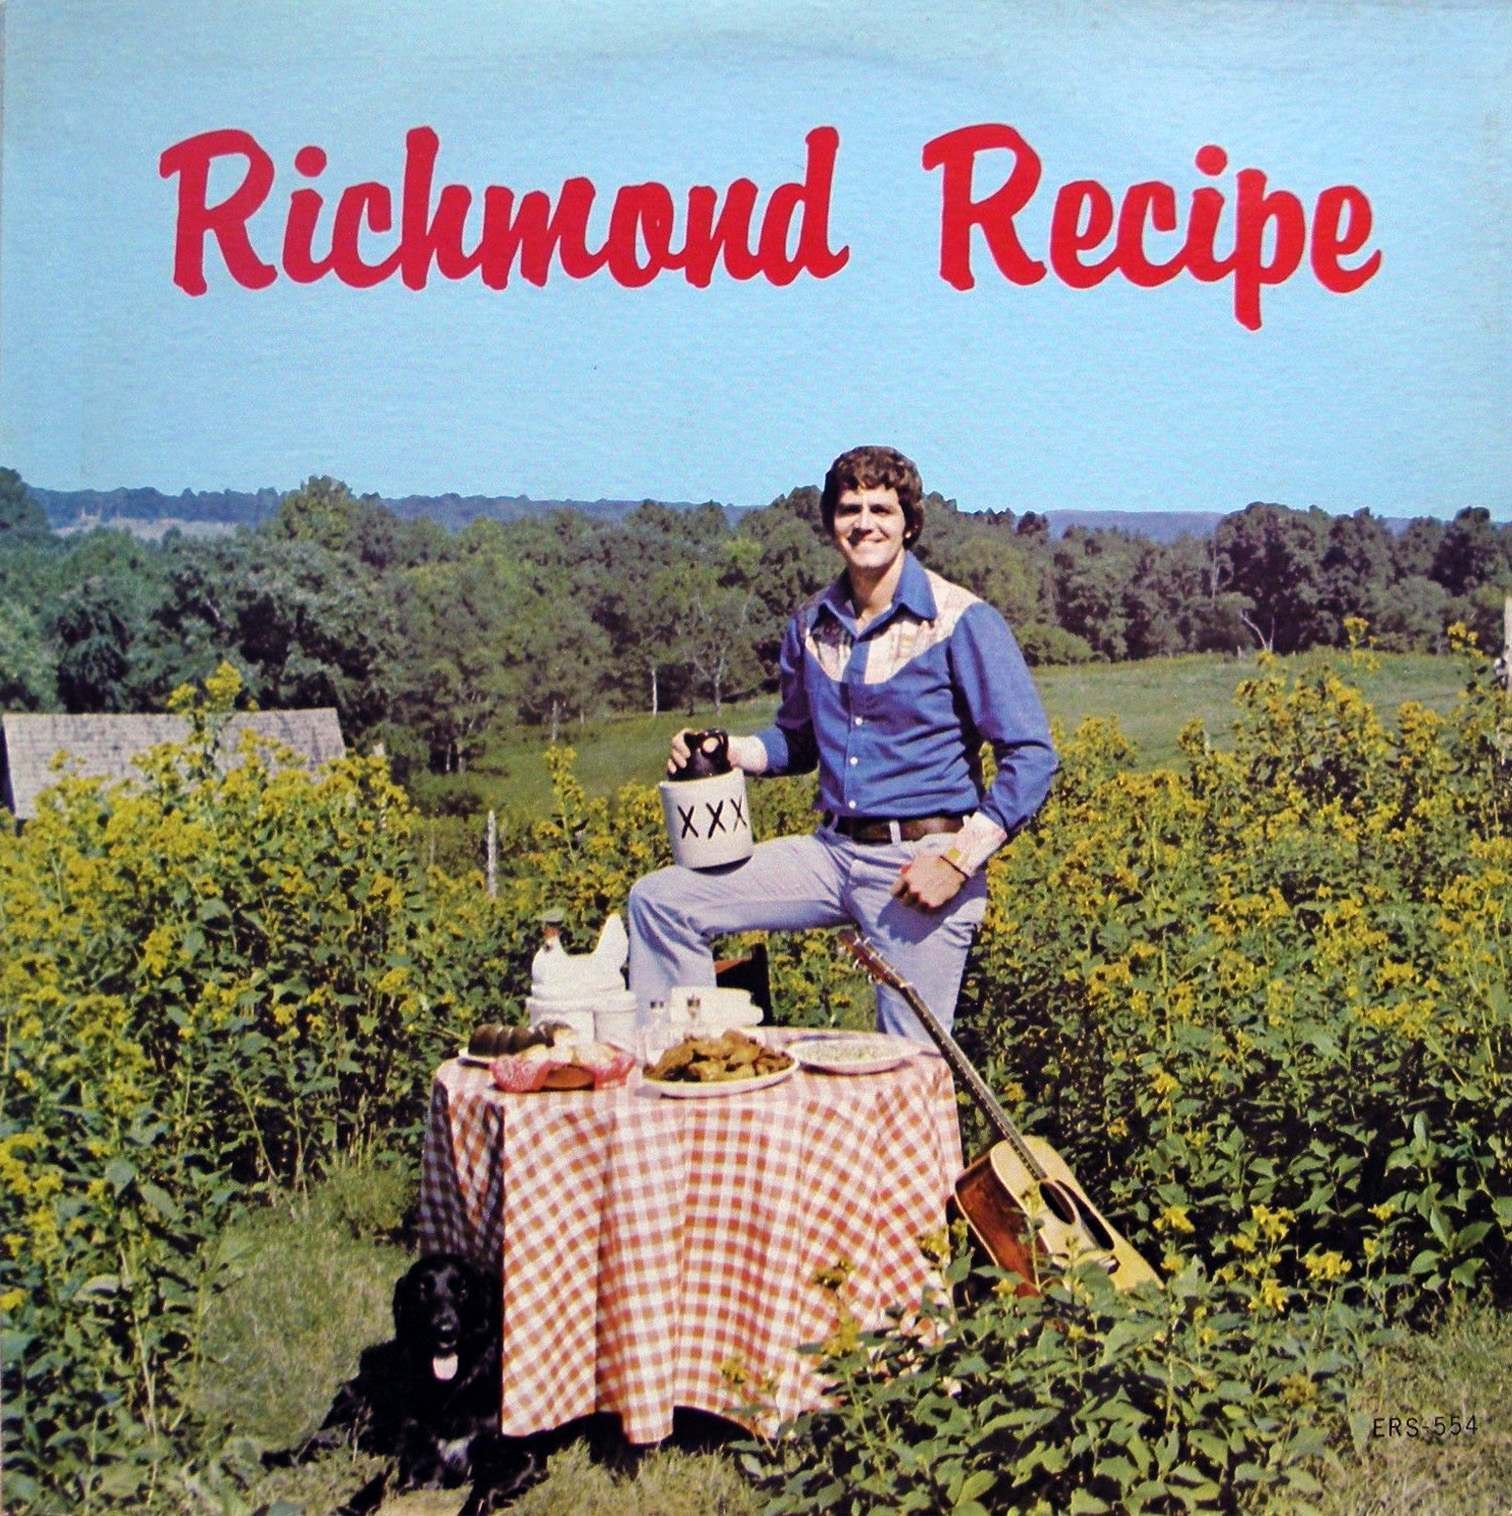 richmond recipe